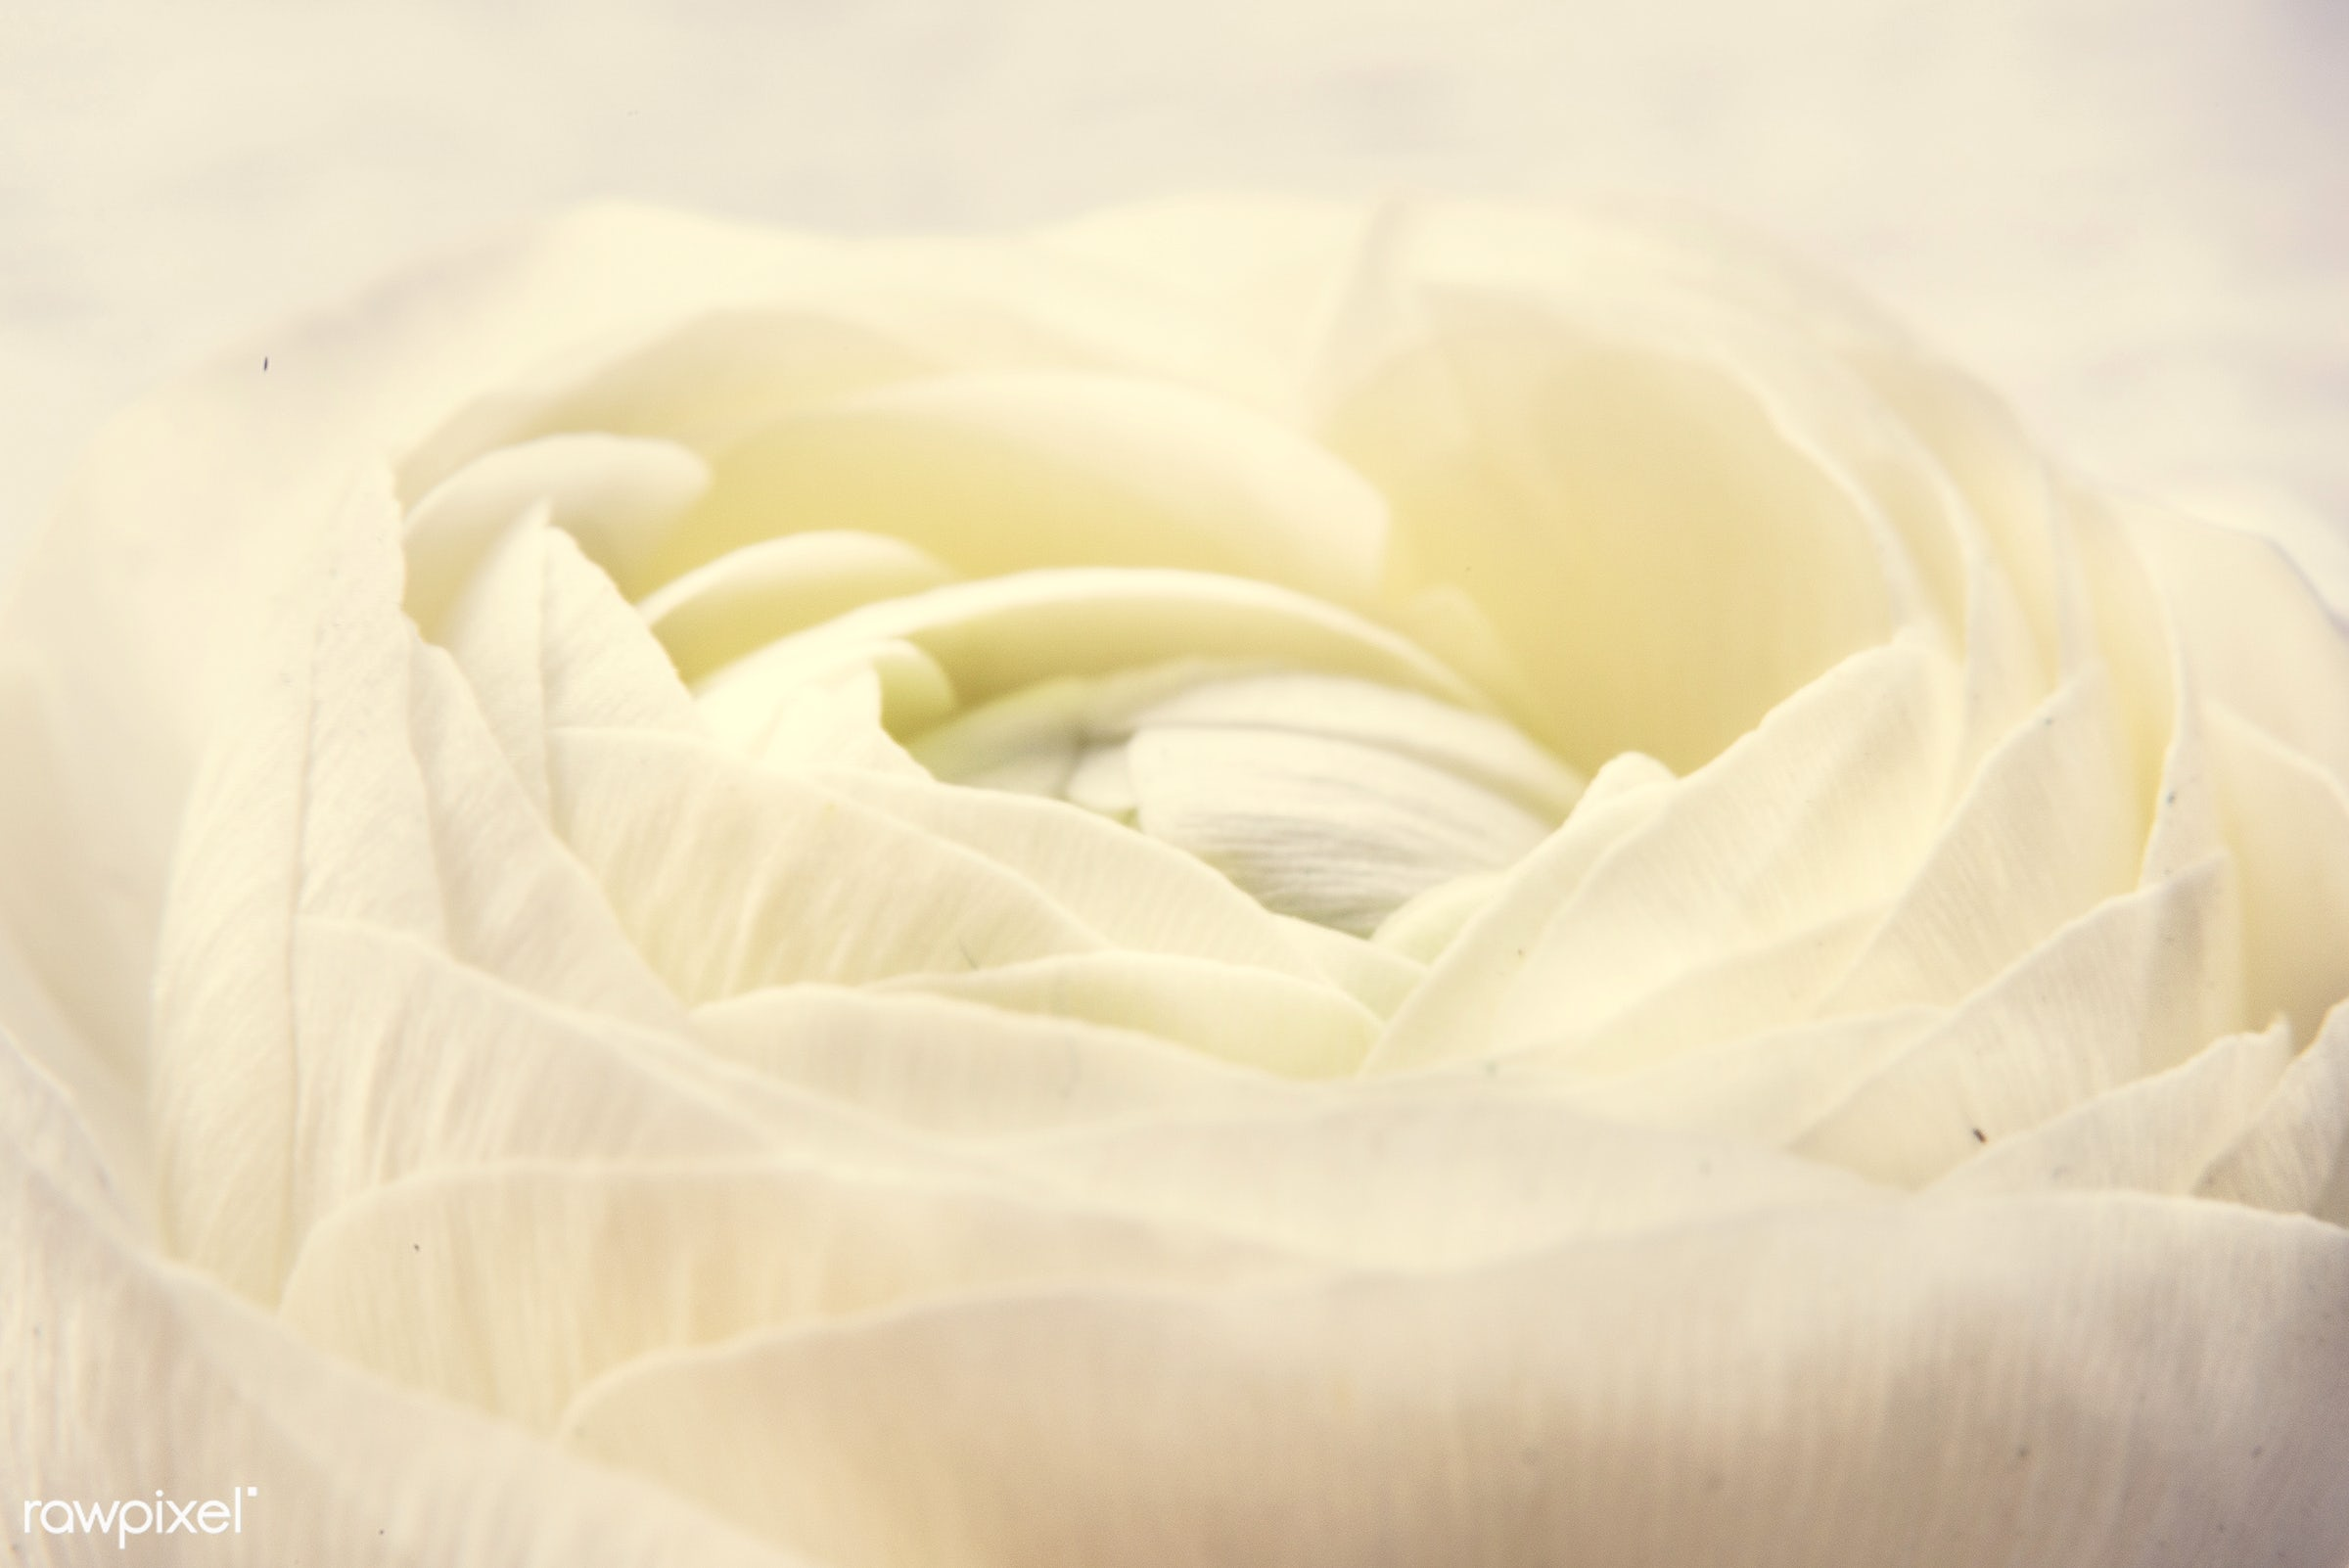 bouquet, nobody, detail, leaf, leaves, love, nature, flowers, cheerful, flower, refreshment, white, present, rose,...